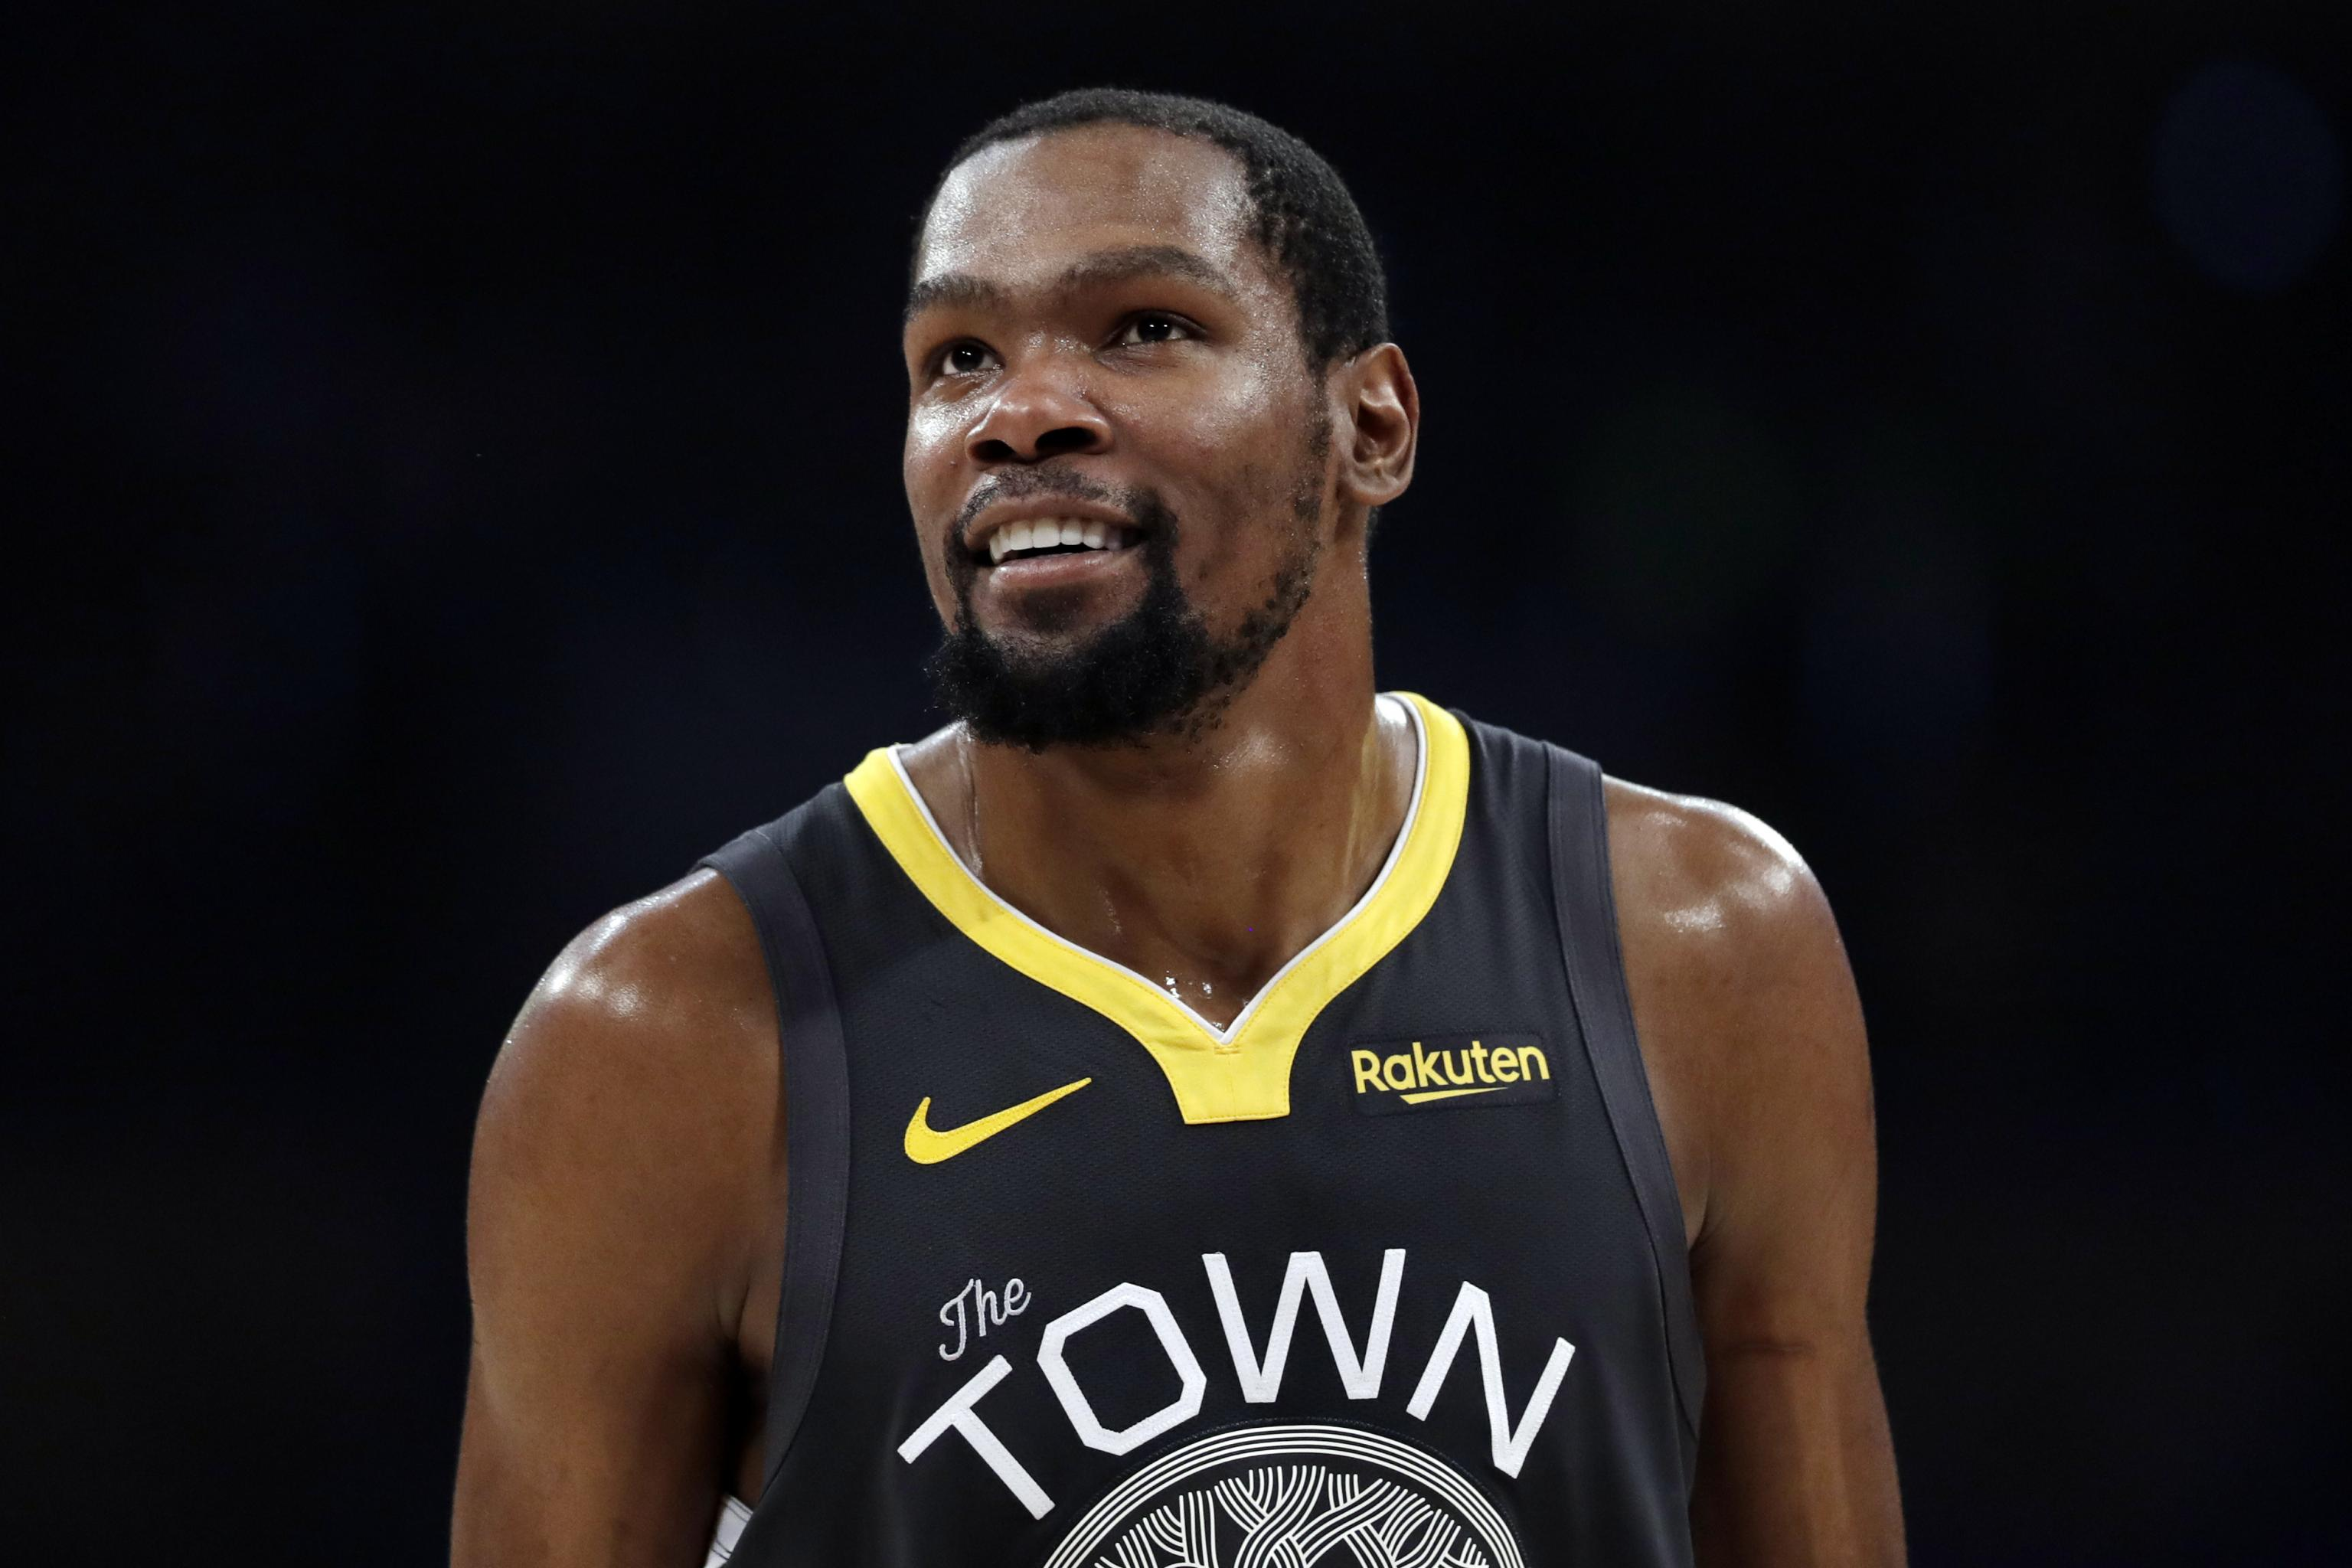 Look Kevin Durant Reveals No 7 Nets Jersey After Wearing No 35 Entire Career Bleacher Report Latest News Videos And Highlights